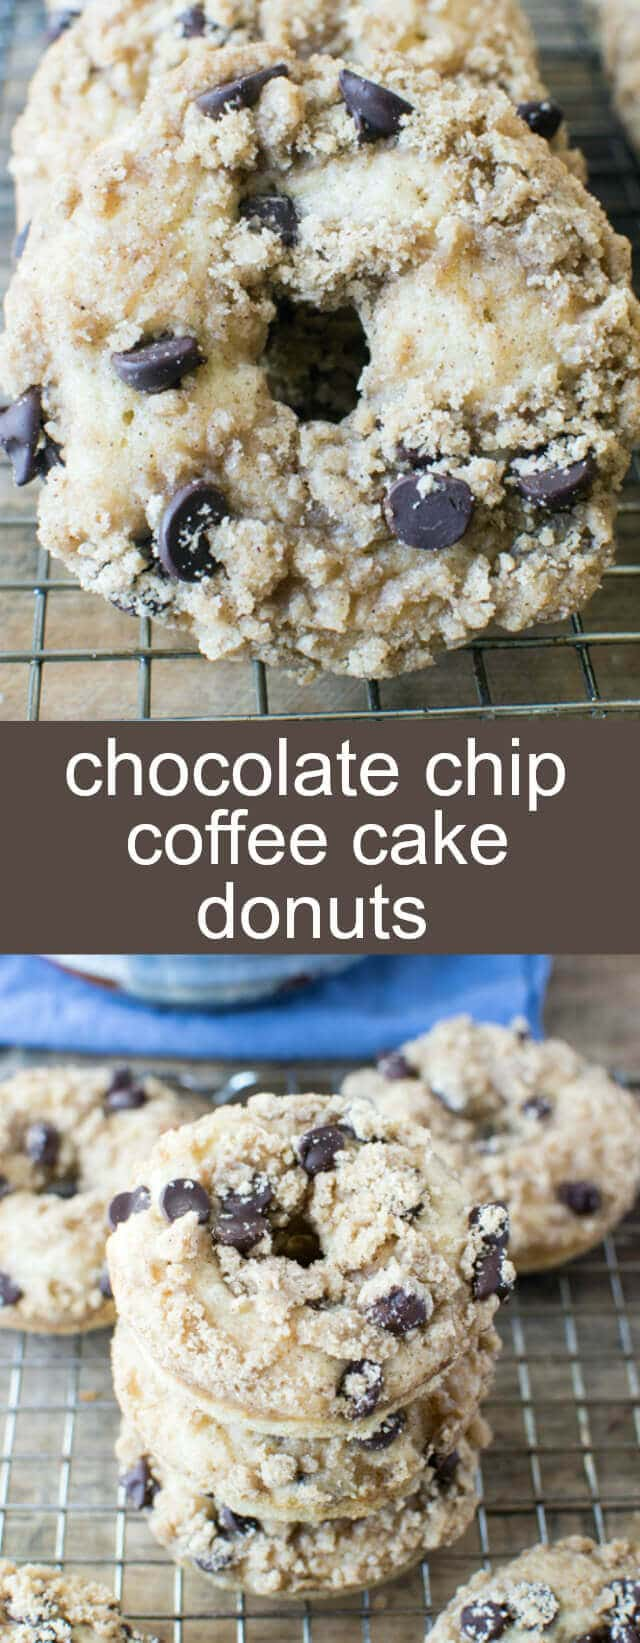 Chocolate Chip Coffee Cake Donuts {A Deliciously Fun Breakfast} donuts/ coffee cake/ chocolate chips Baked Chocolate Chip Coffee Cake Donuts with a butter crumb topping and full of chocolate chips. Perfect for a weekend breakfast treat!